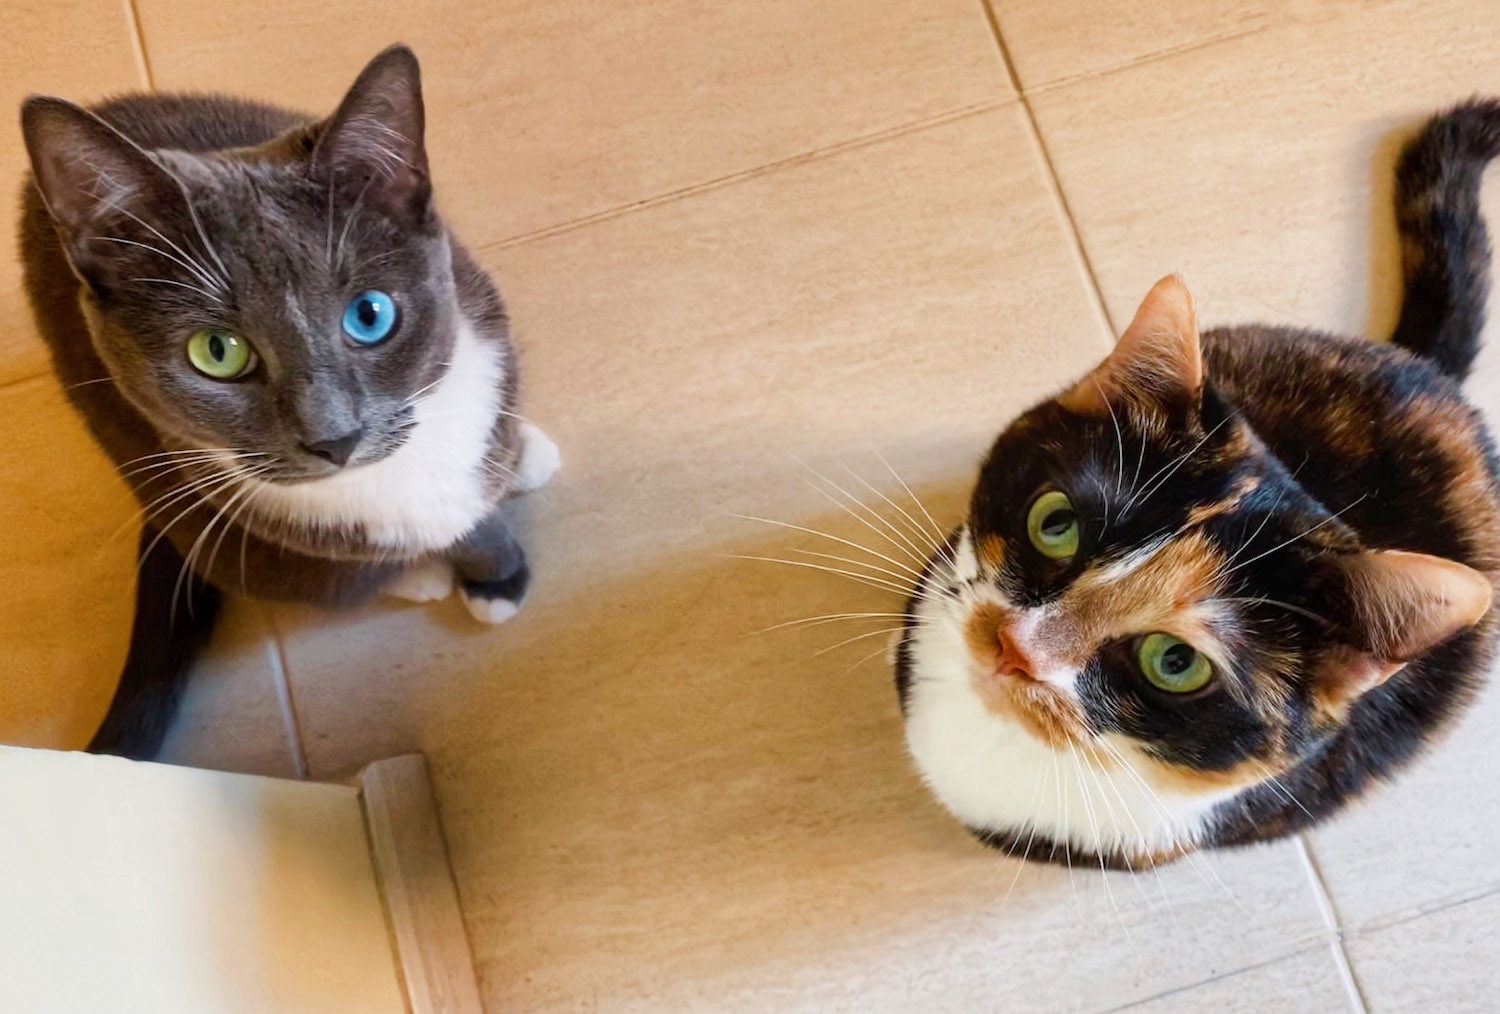 CATERS_CAT_WITH_ODD_EYES_-5_3395962.jpg?profile=RESIZE_930x